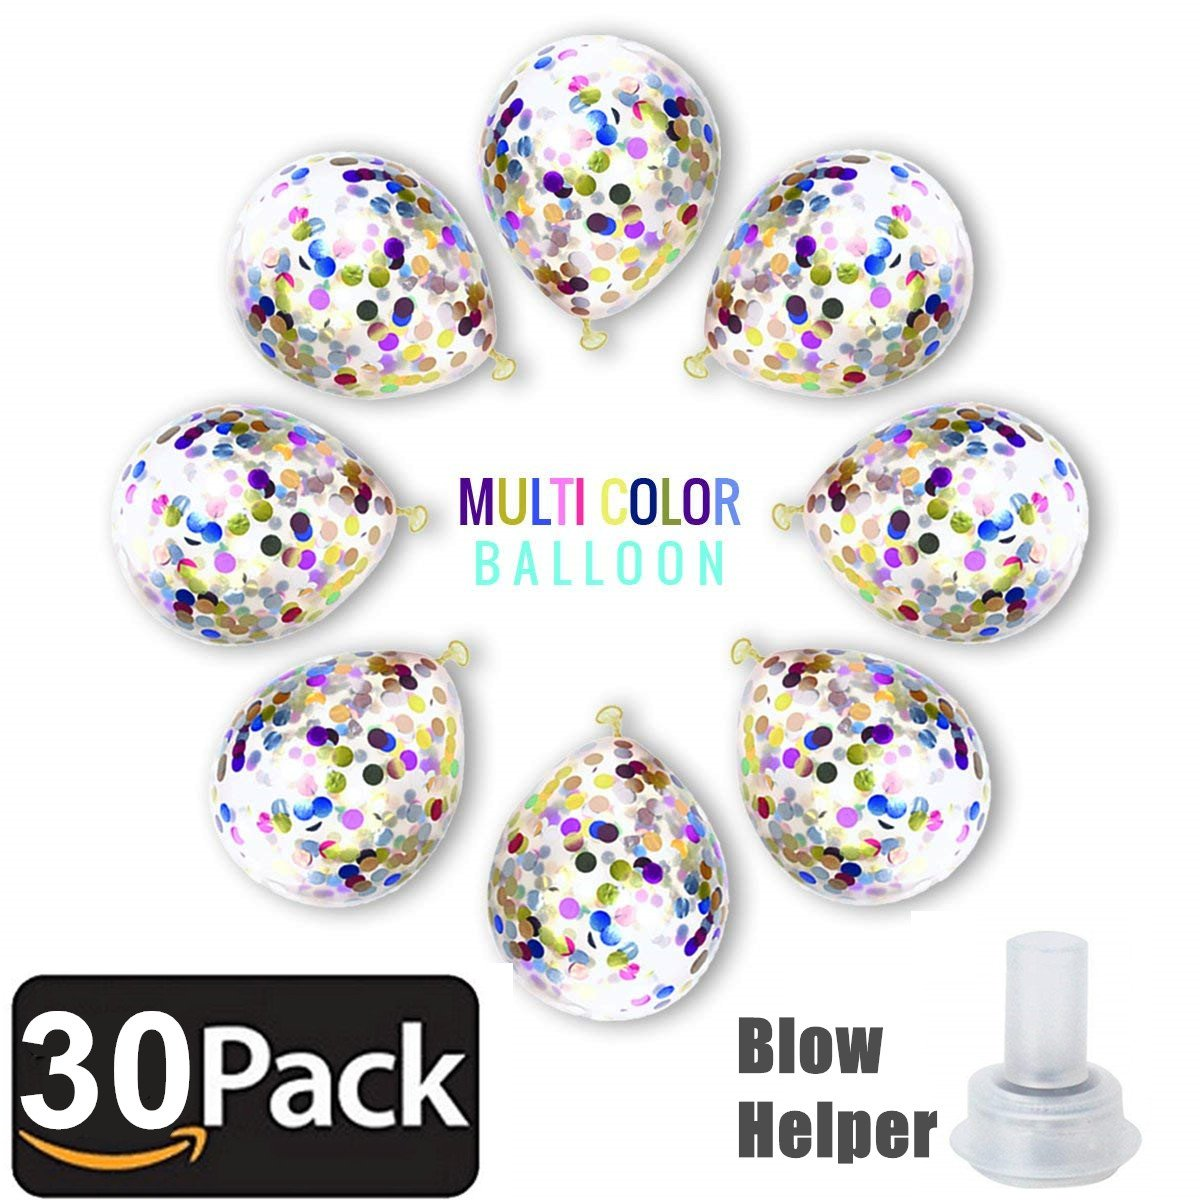 Bollovi Confetti Balloons Latex with Multicolored Paper Dots Party Decorations Wedding Birthday Anniversary Accents (30 Piece), Colorful, 12 Inch by Bollovi